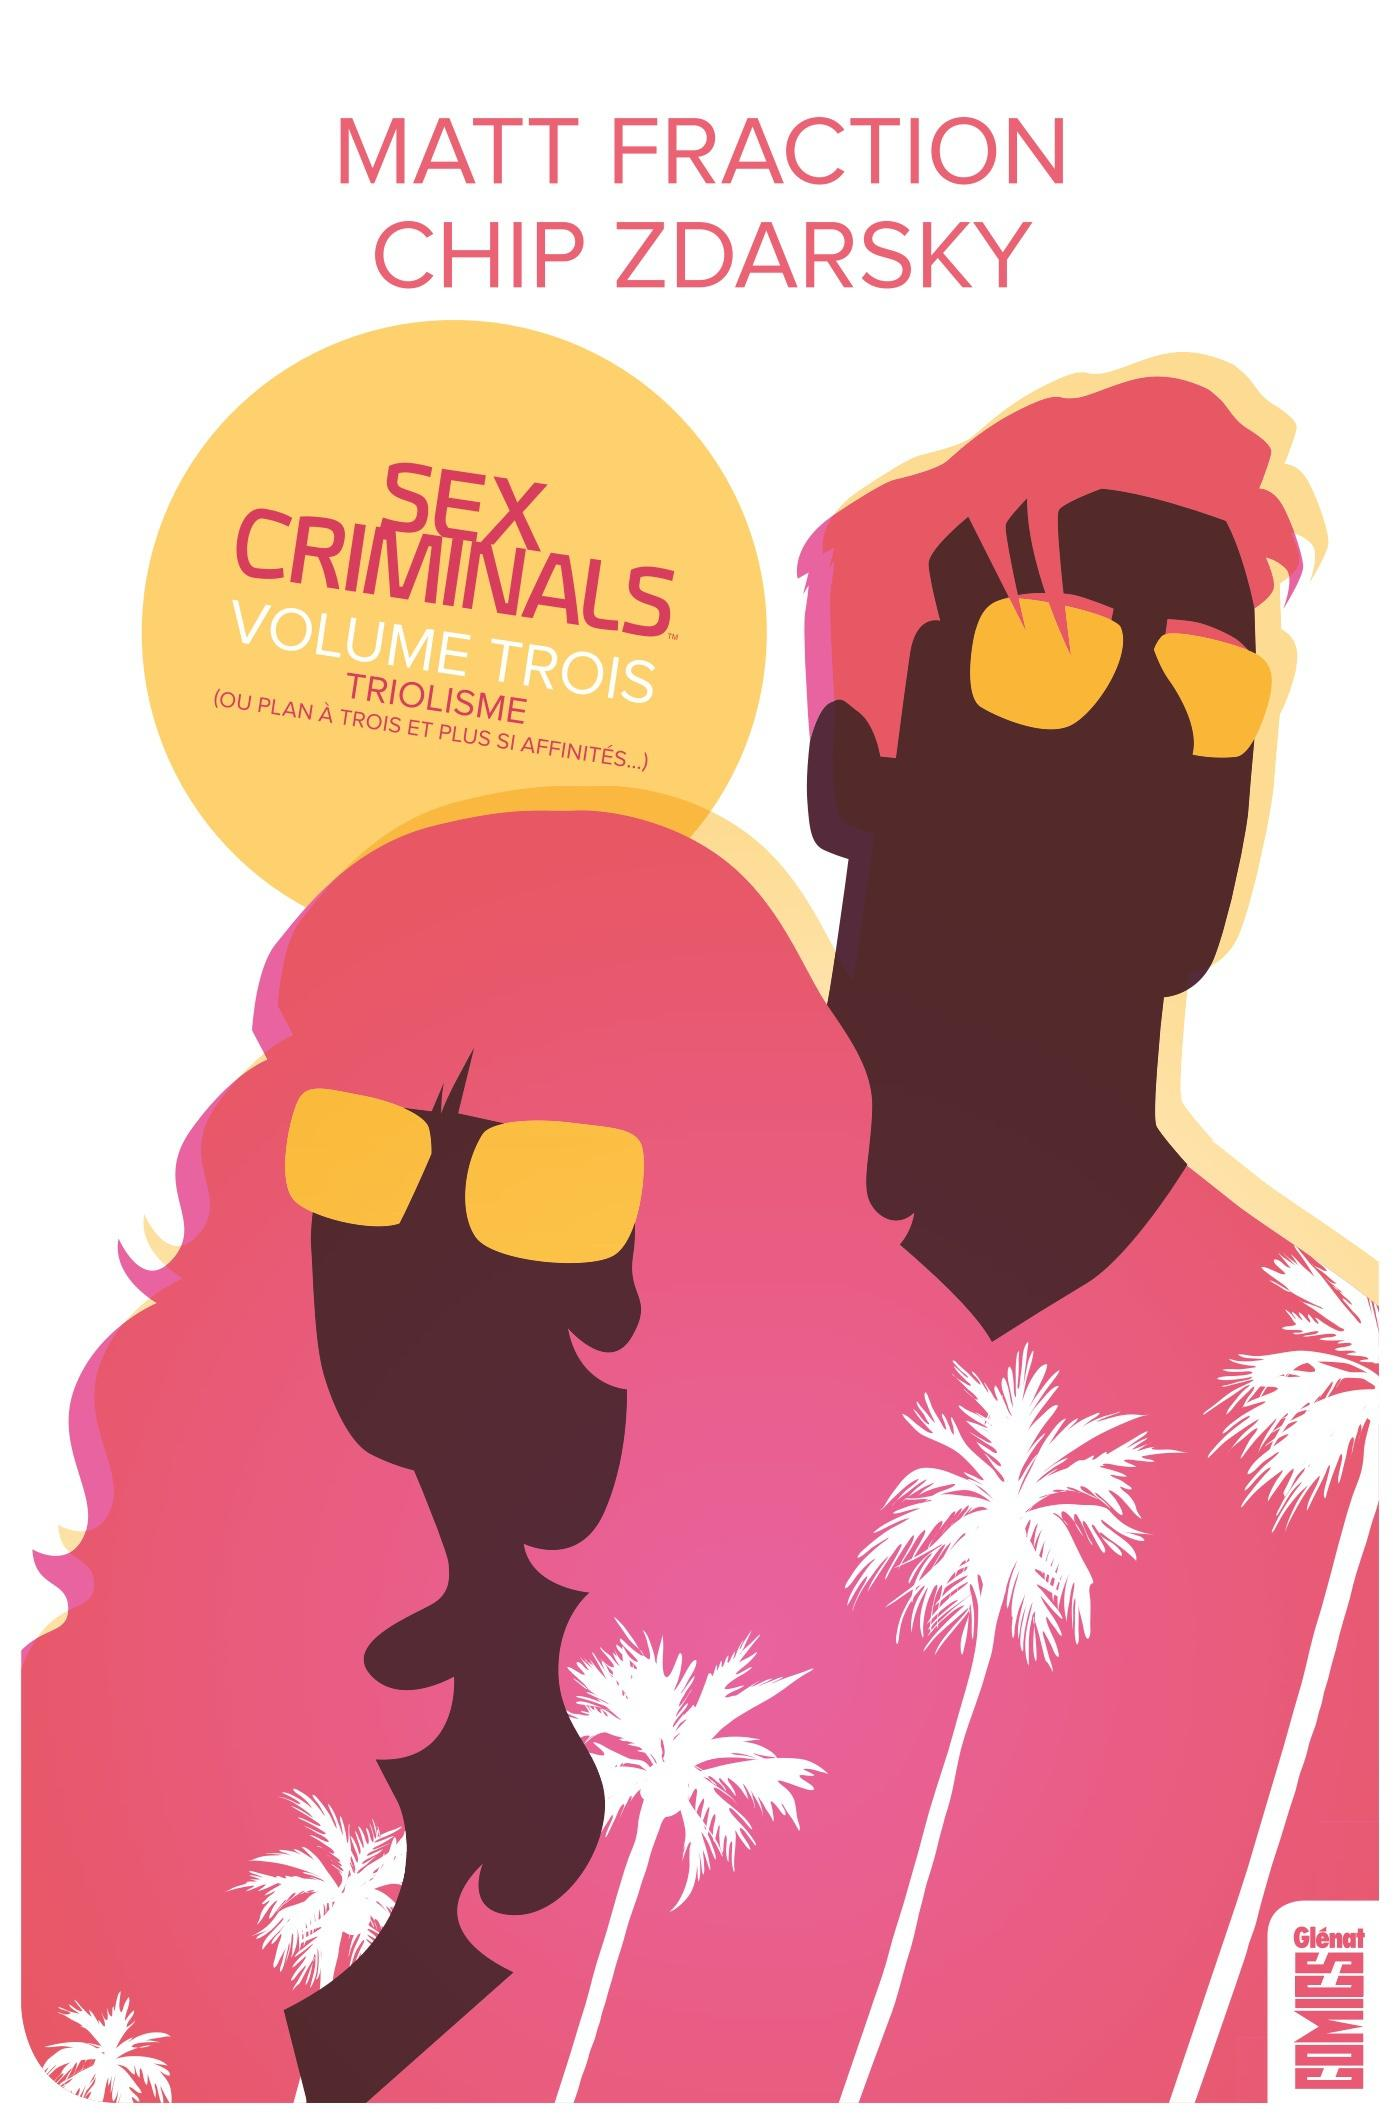 Sex criminals t.3  - Matt Fraction  - Chip Zdarsky